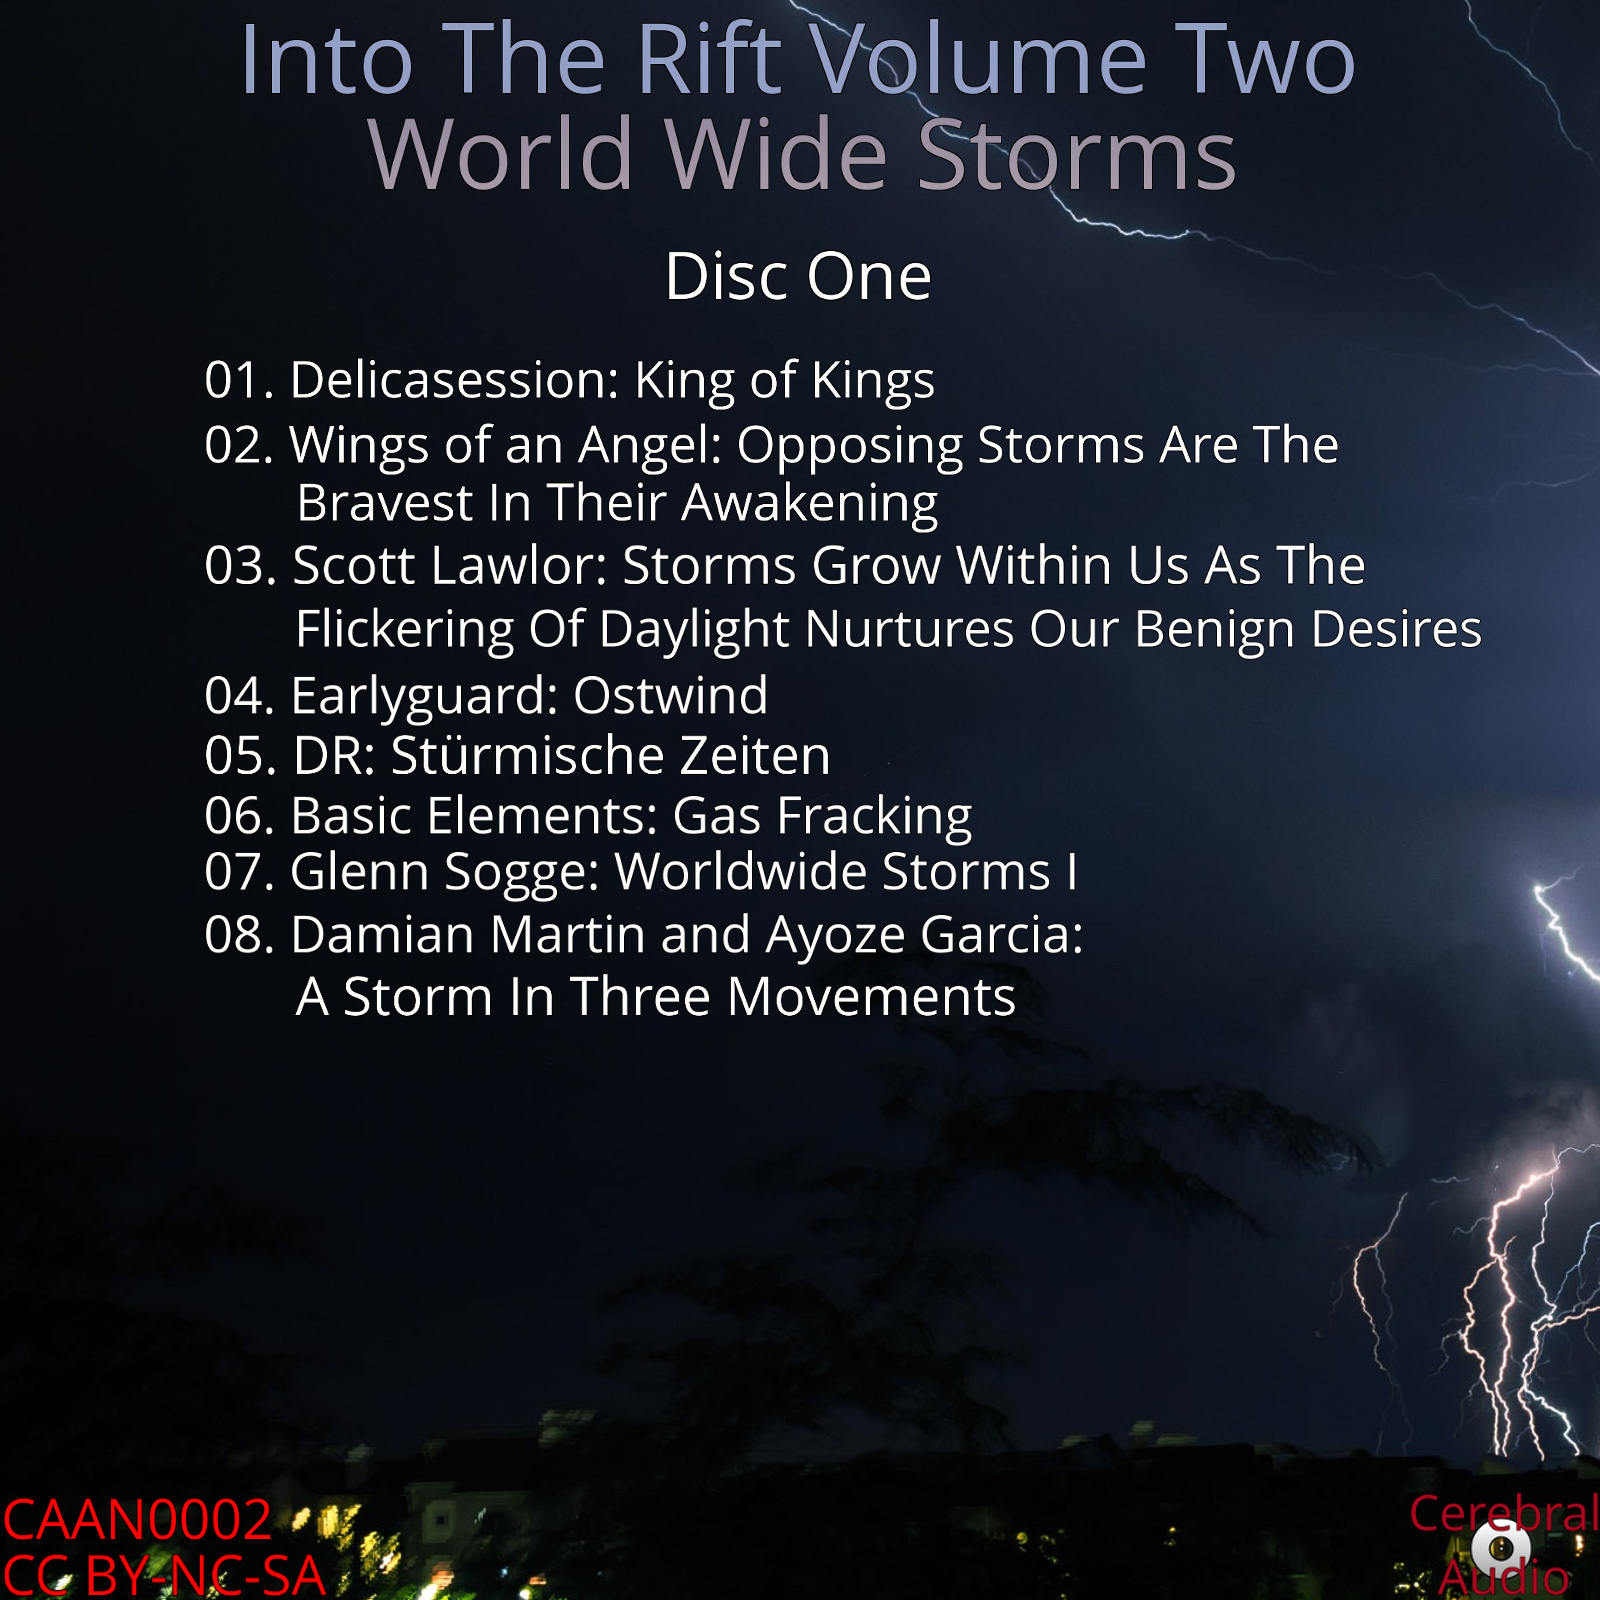 Into The Rift Volume Two: World Wide Storms